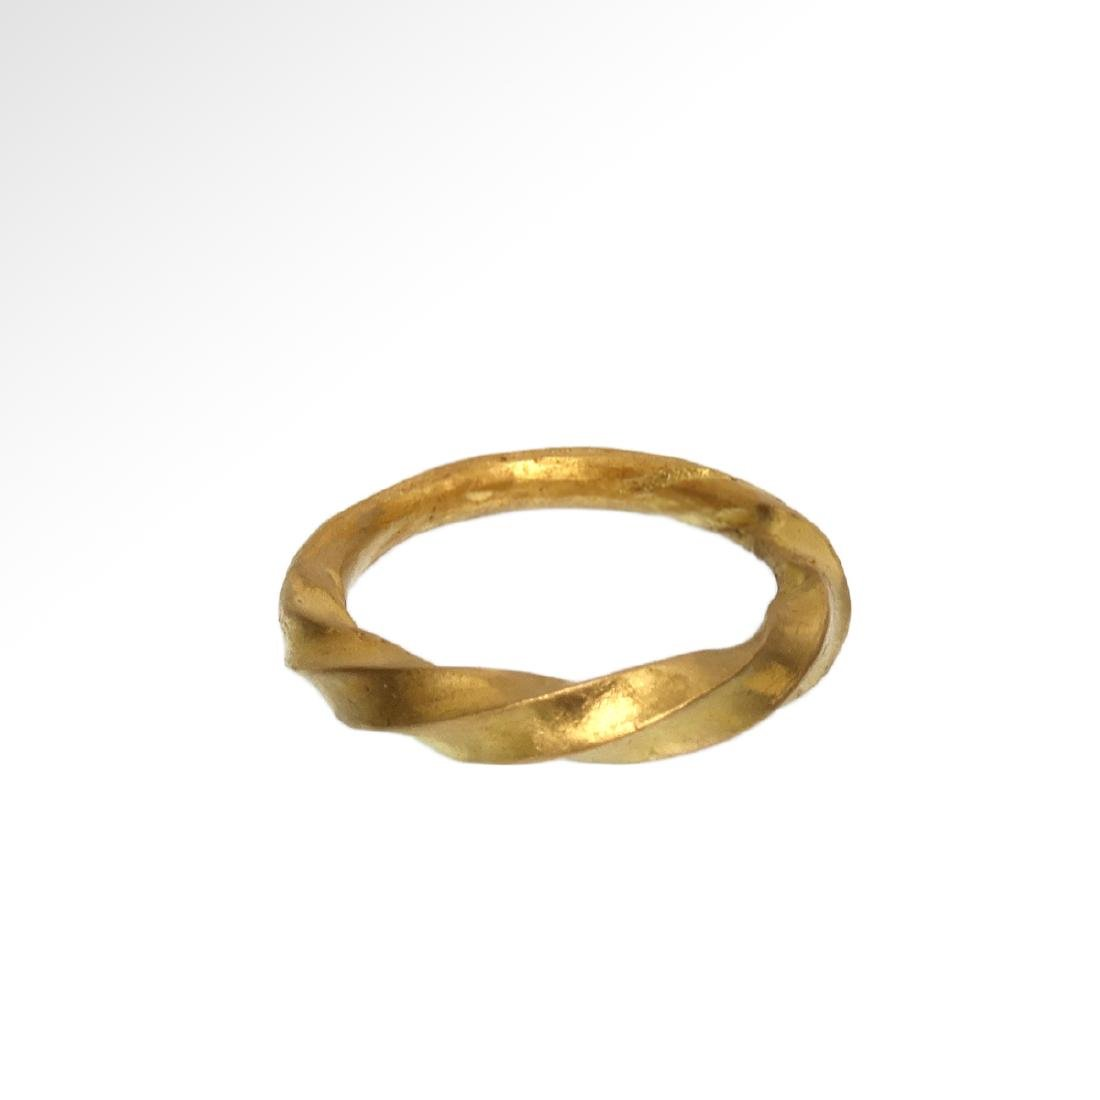 Viking Solid Gold Ring, c. 11th Century A.D. - 2